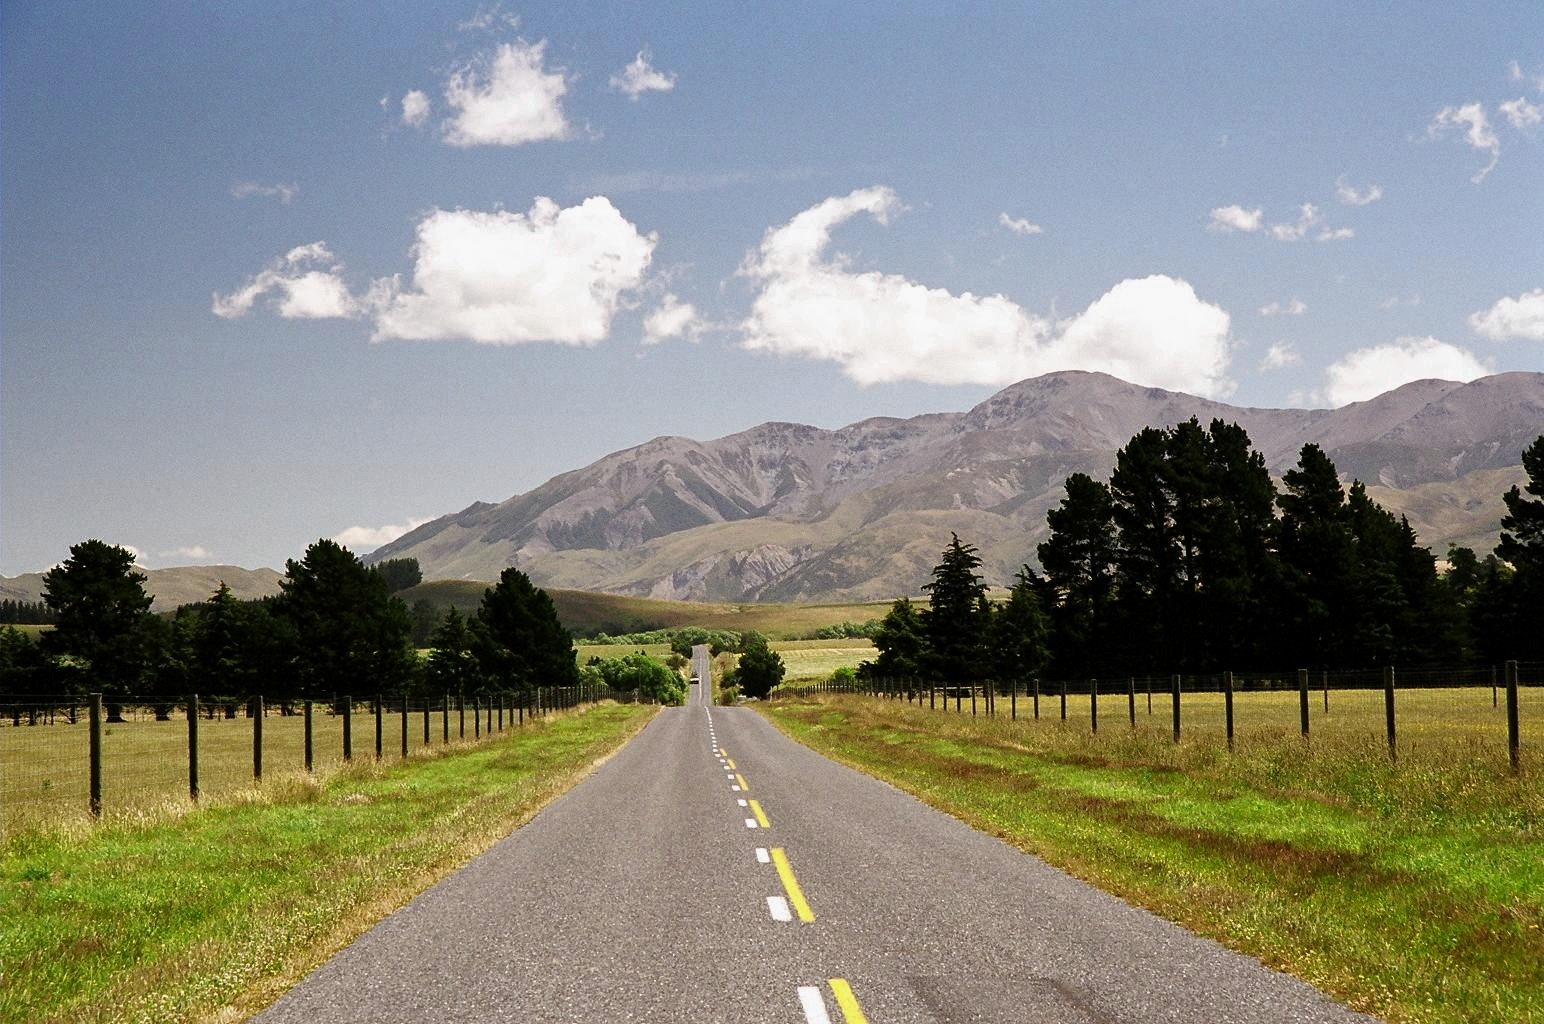 Kaikoura to Christchurch via Cheviot | Cycle Tour New Zealand